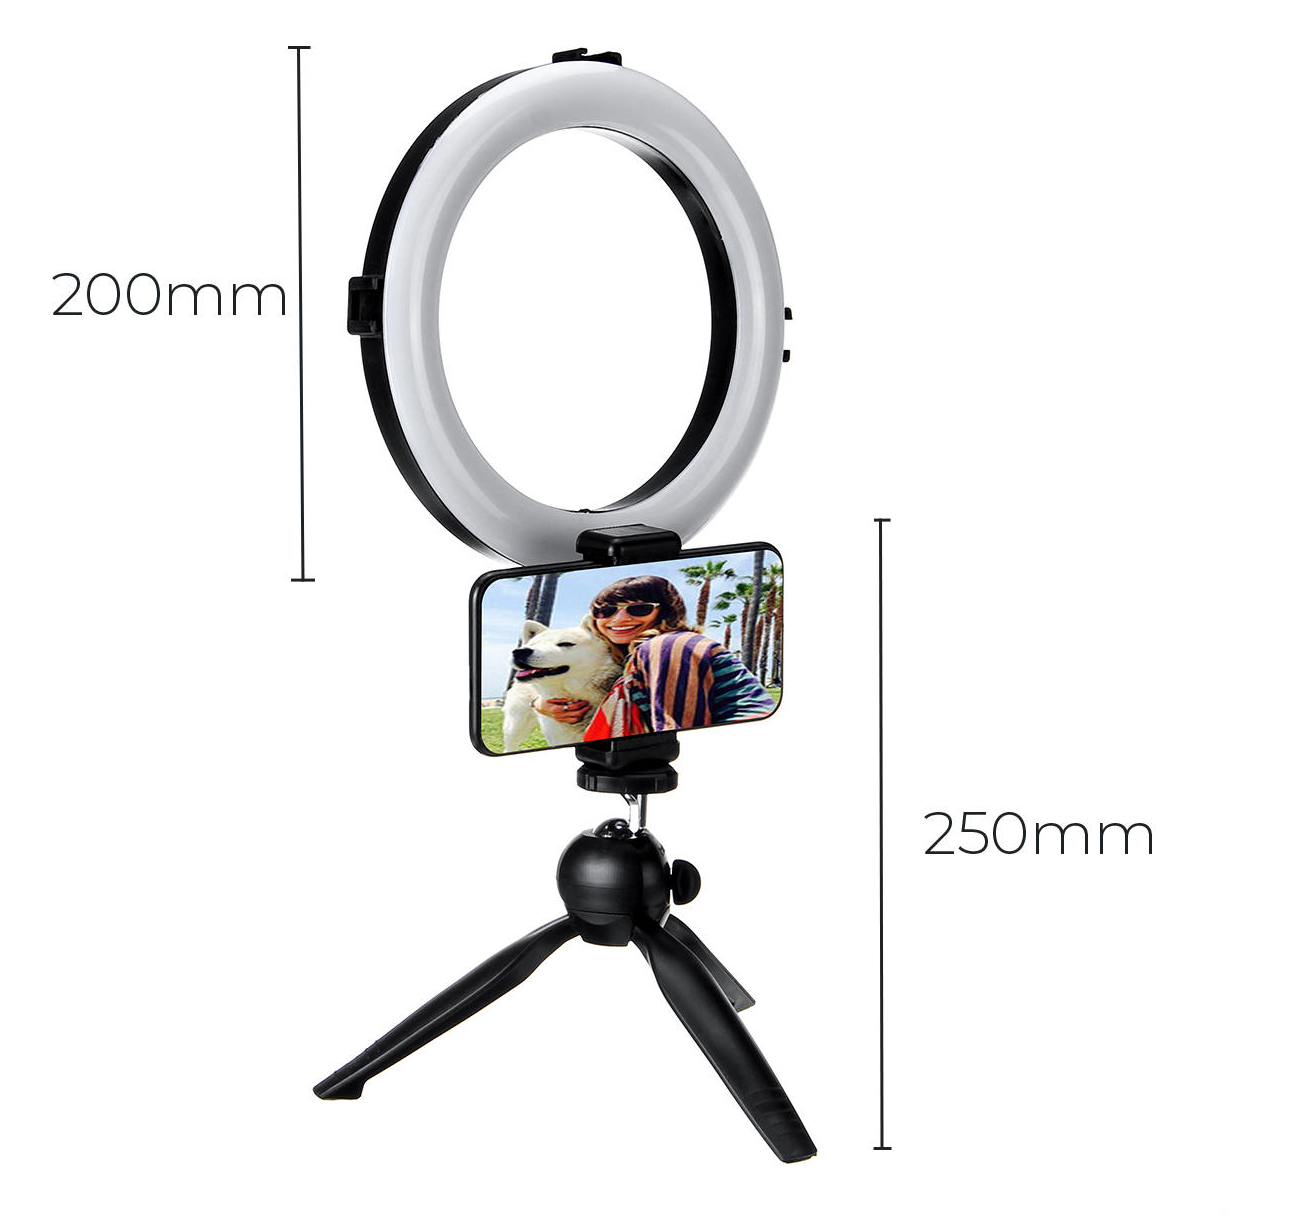 TechBolt™ LED Selfie Ring Light with Tri Color White, Warm and Soft Light Dimmable Settings